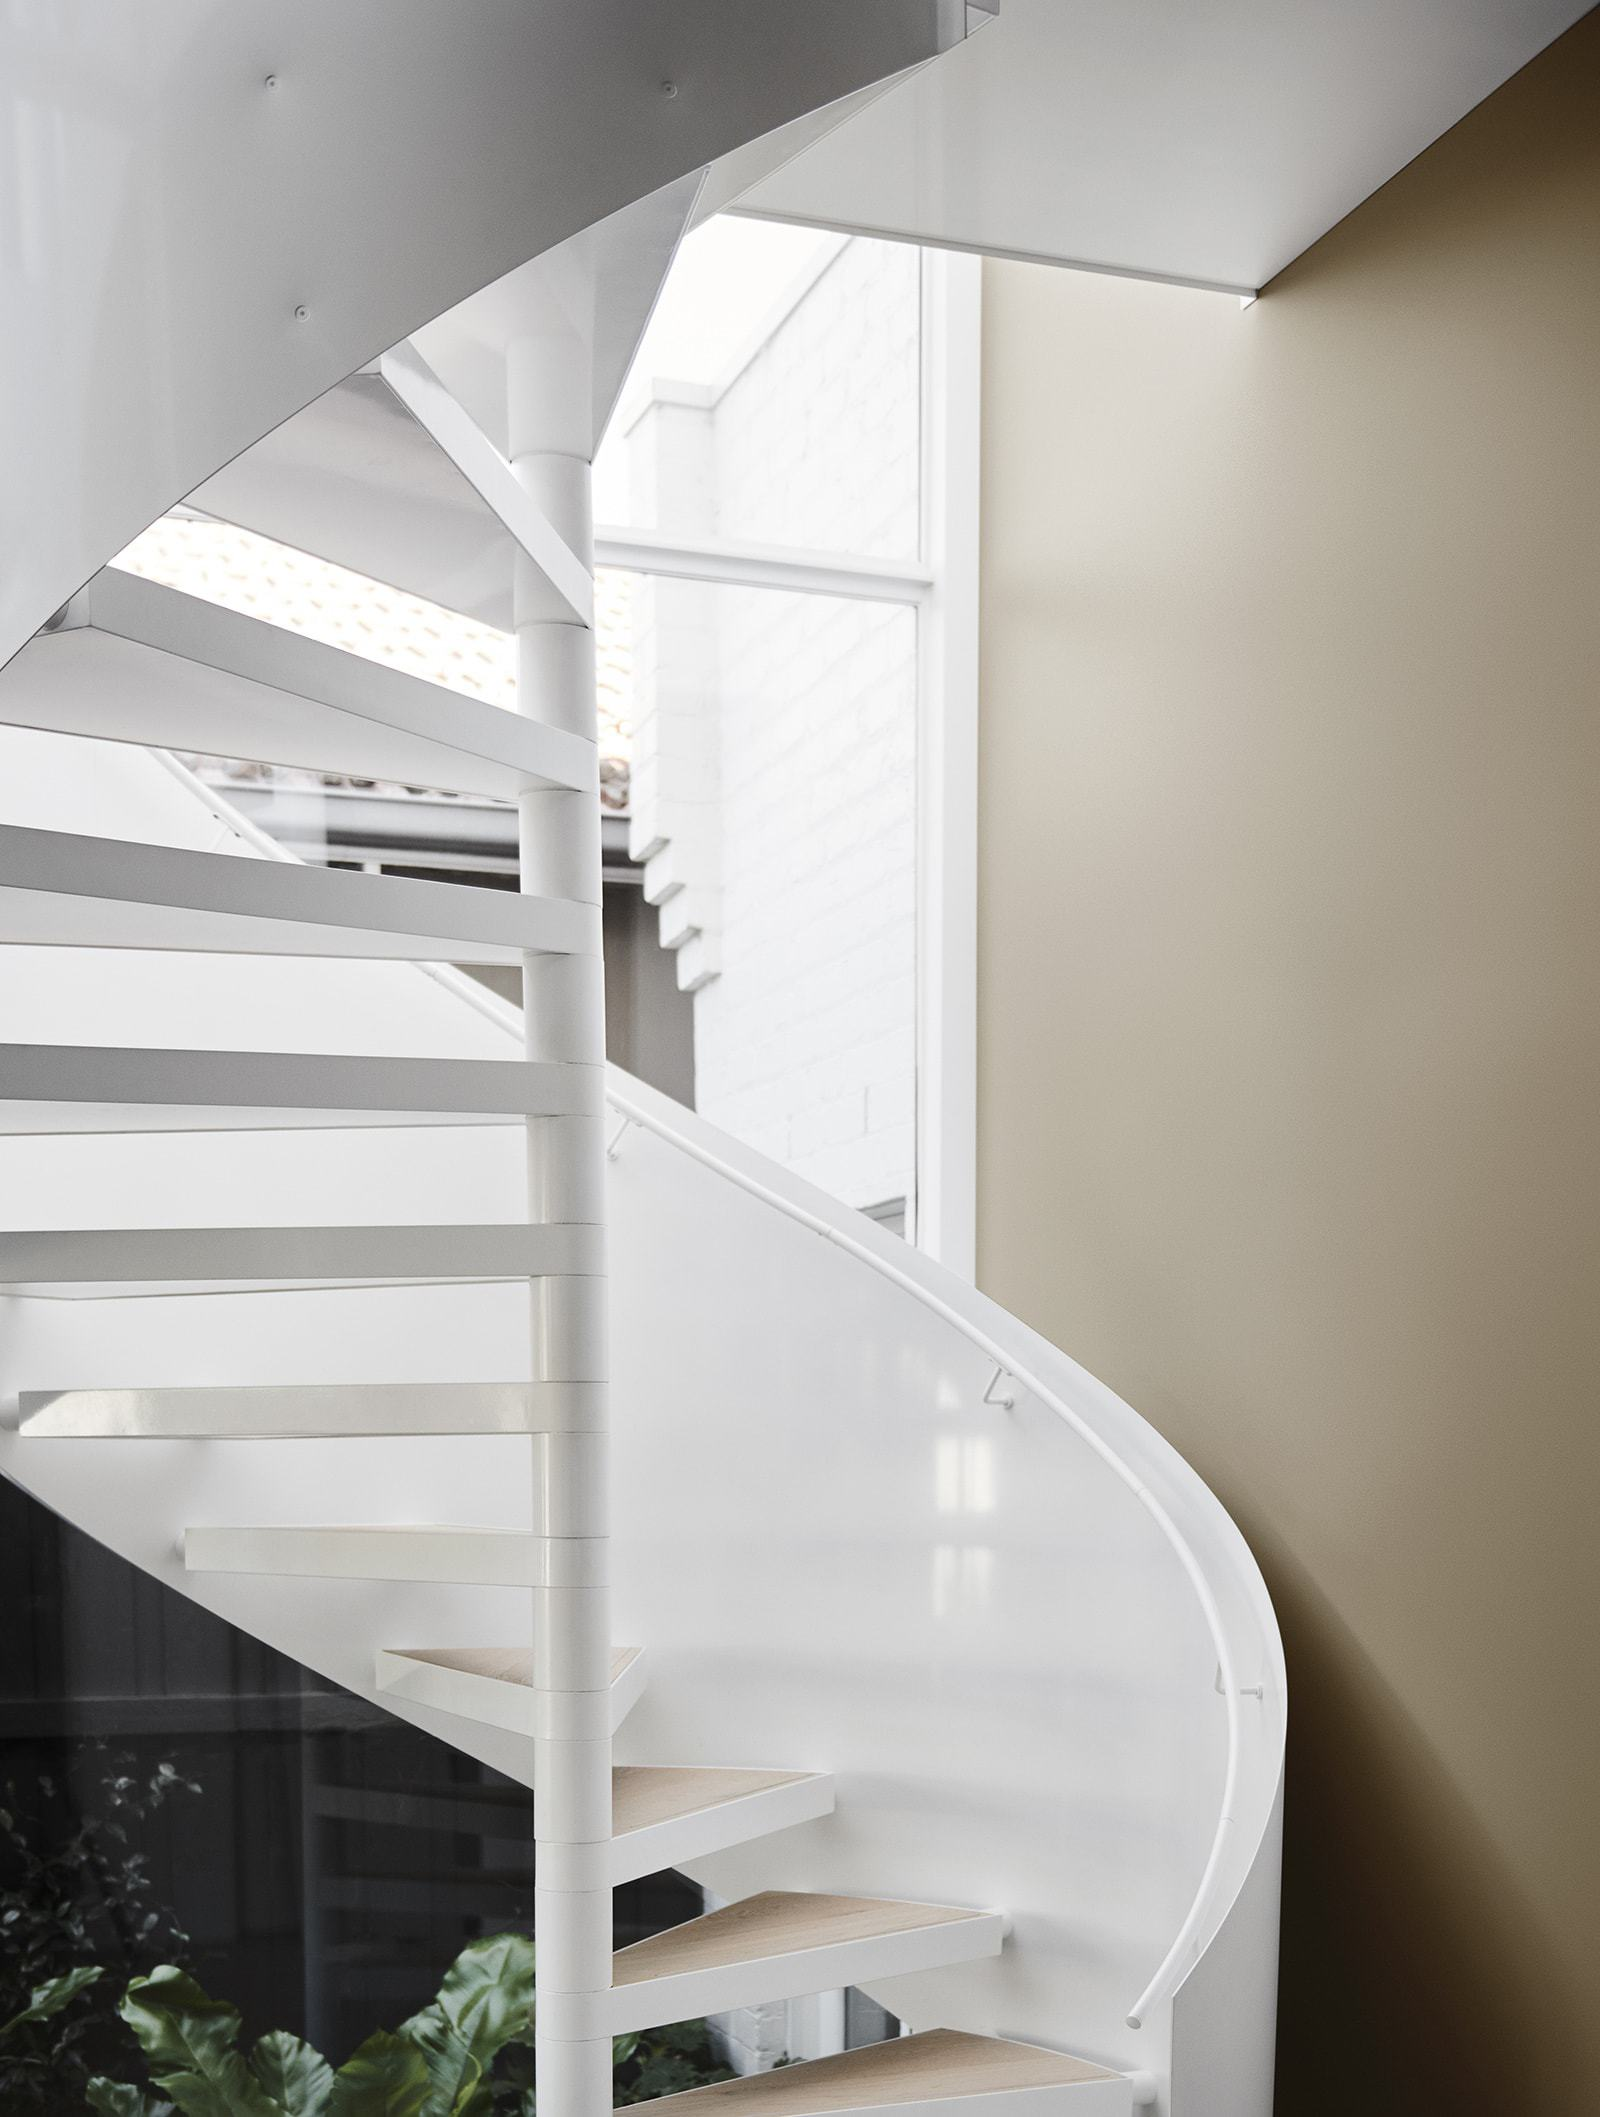 neutral interior design scheme white staircase against muddy terracotta wall paint